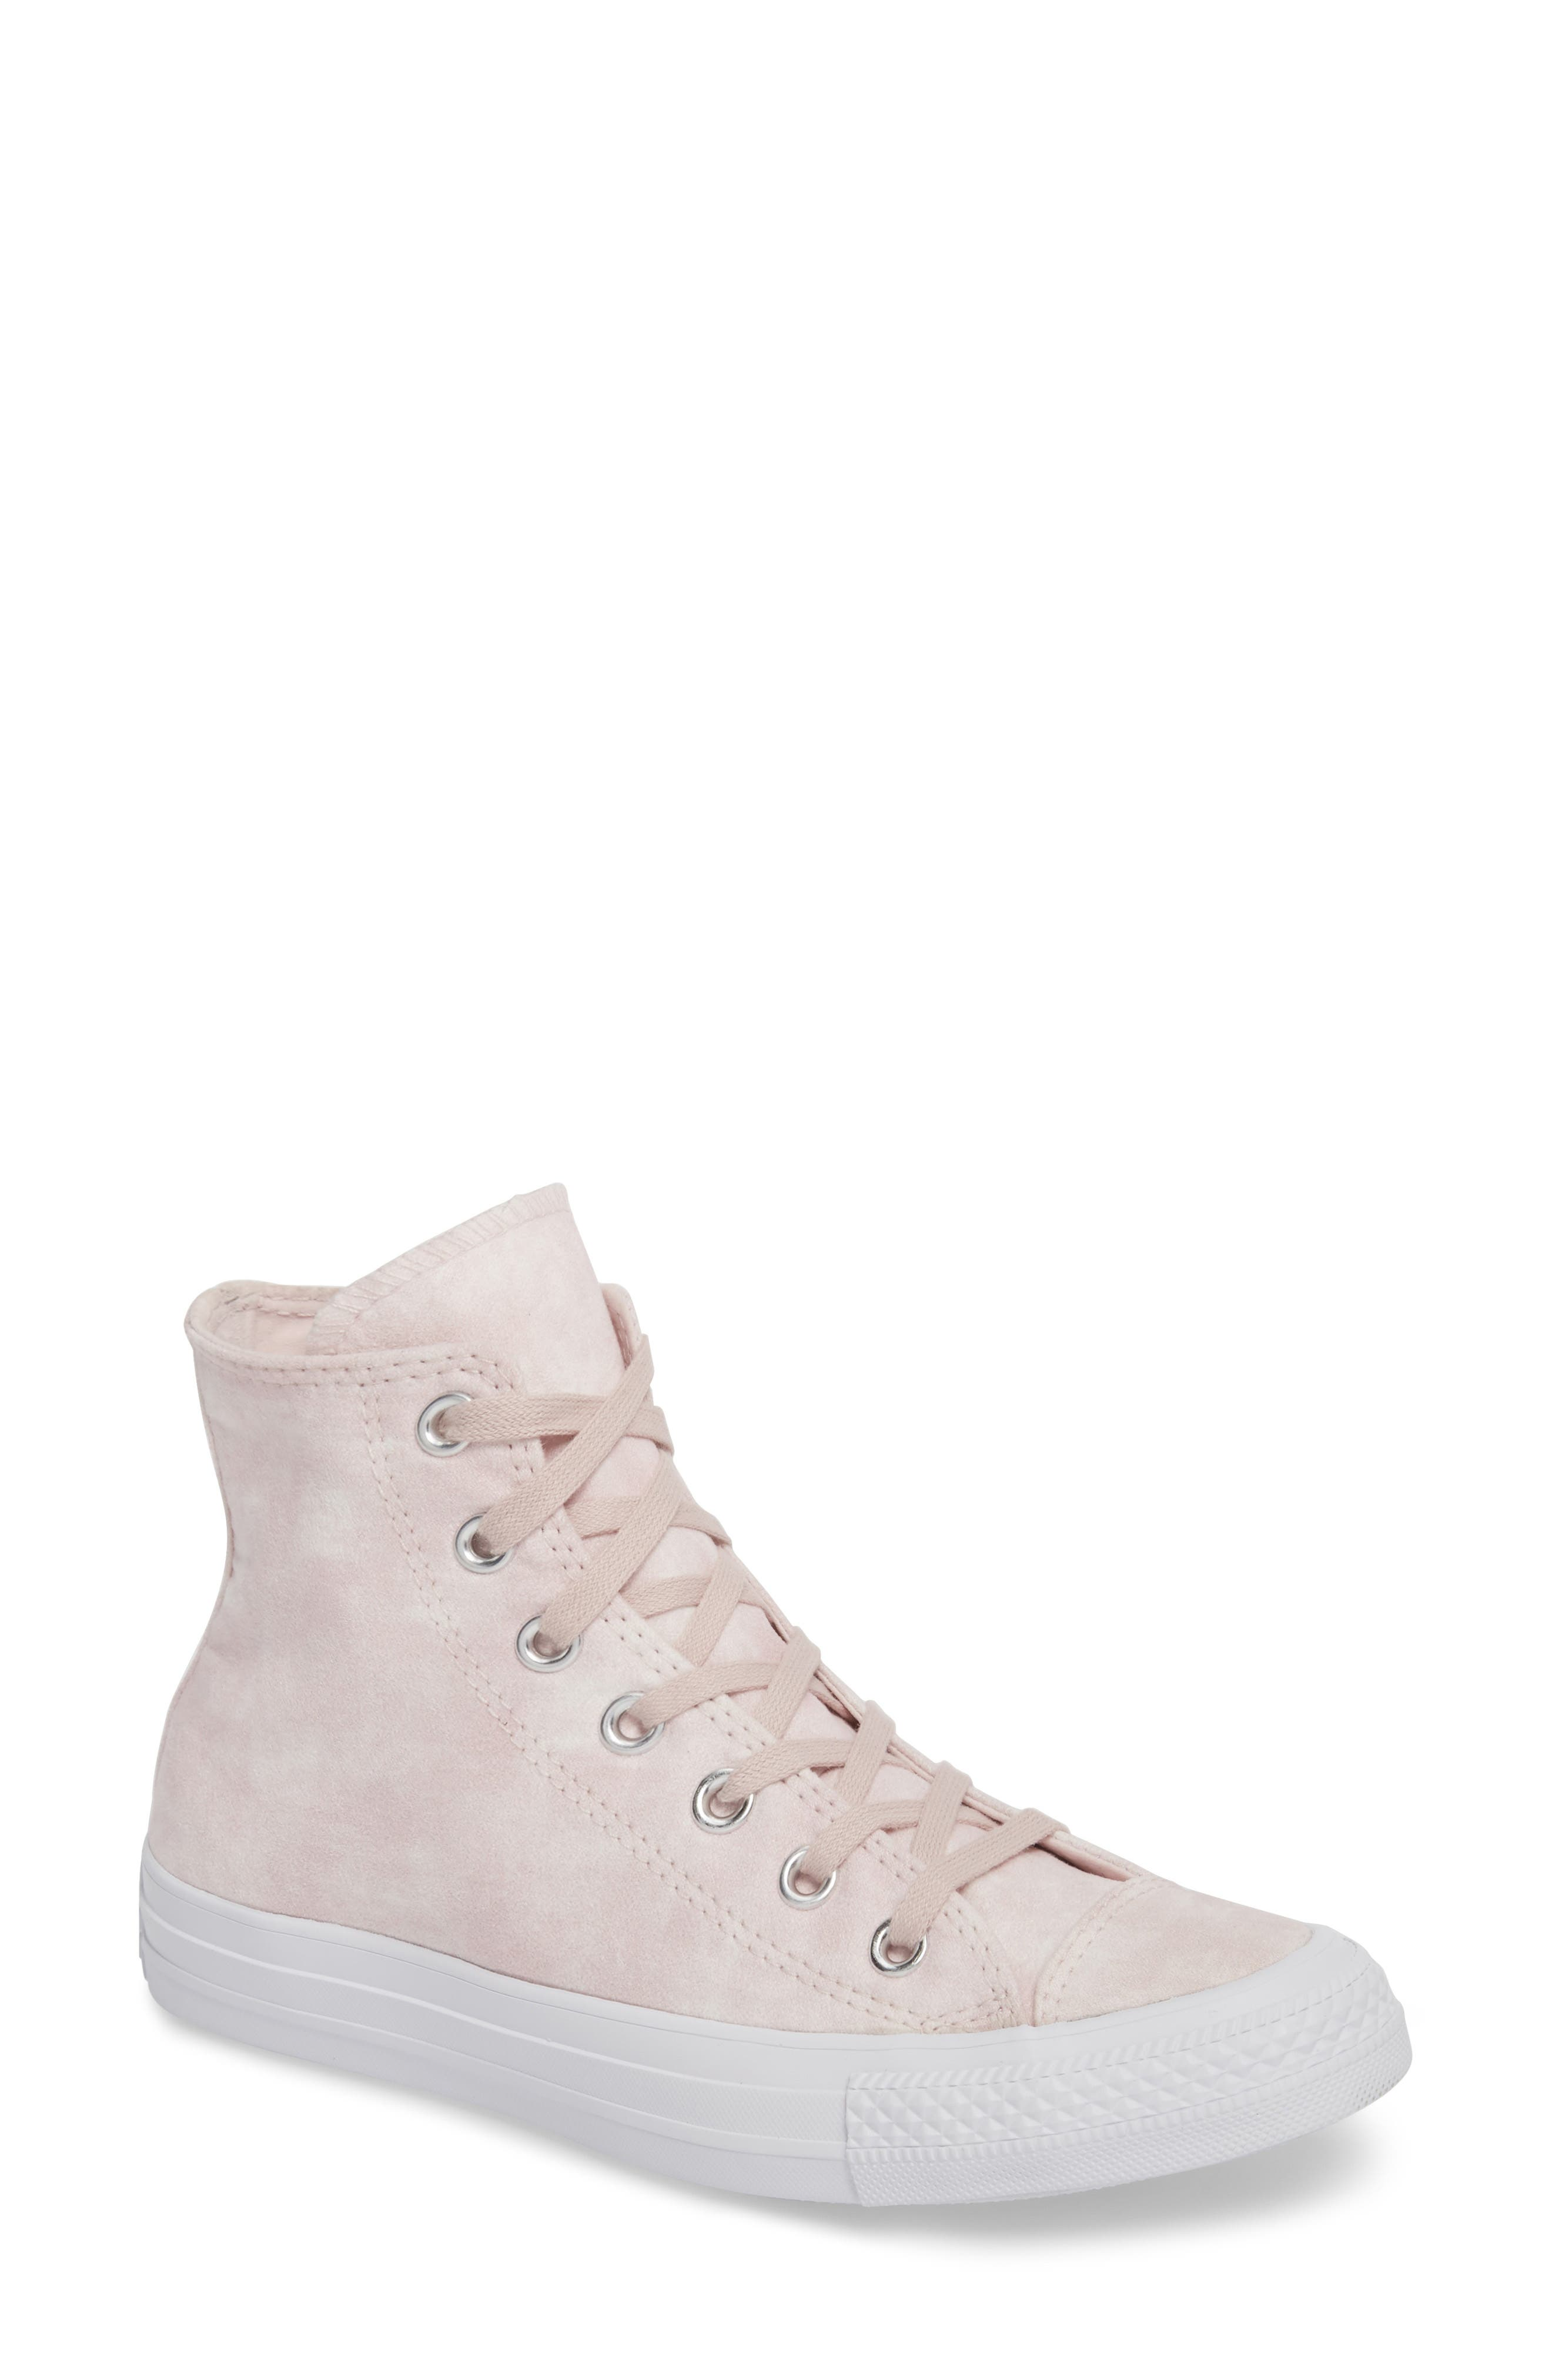 Chuck Taylor<sup>®</sup> All Star<sup>®</sup> Peached High Top Sneaker,                             Main thumbnail 1, color,                             Barely Rose